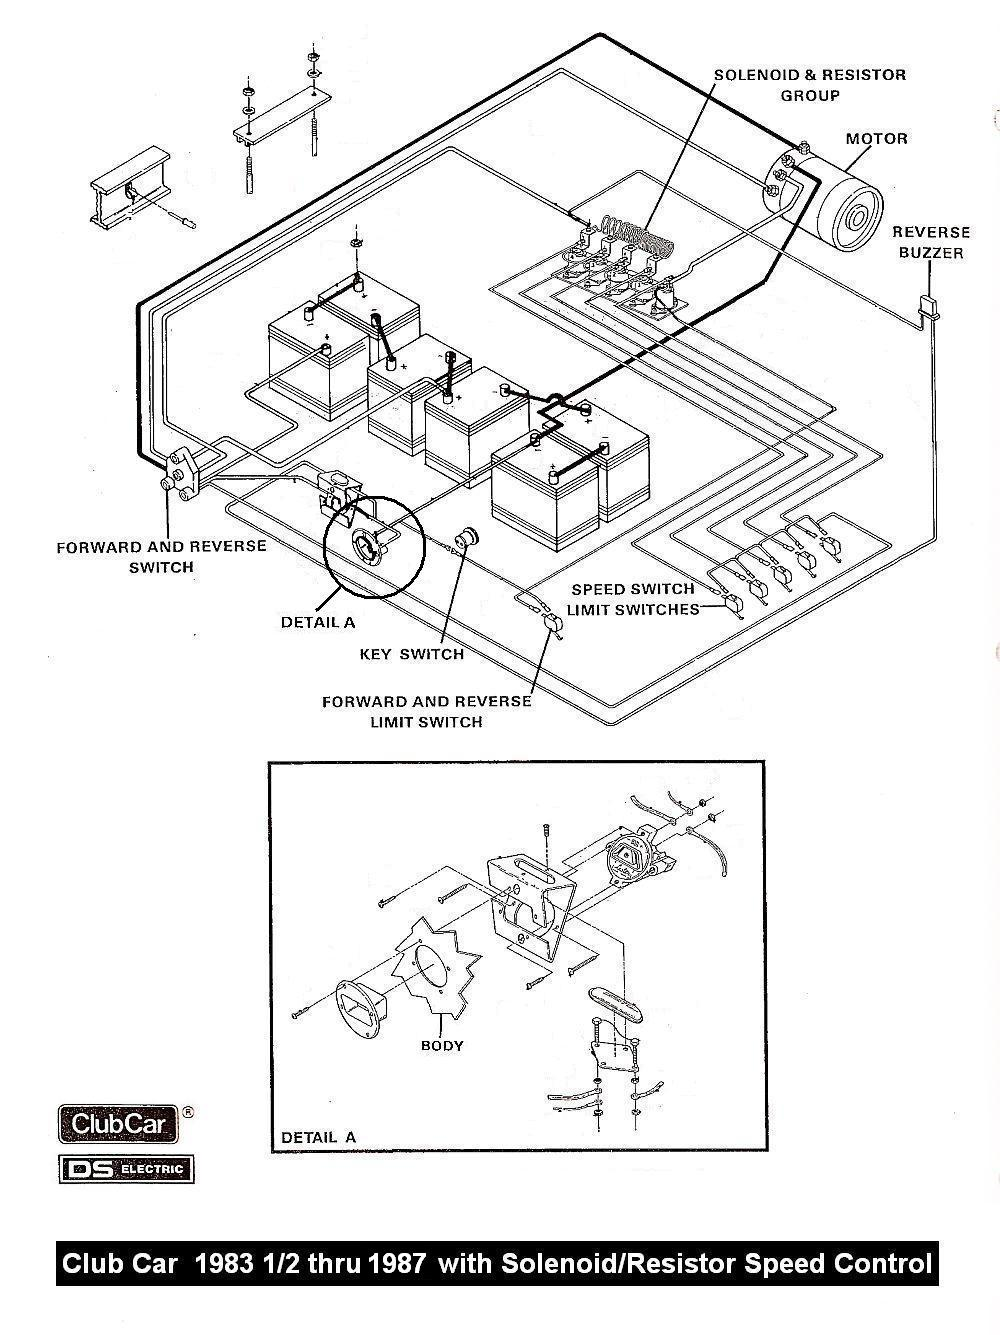 1988 36 volt club car wiring diagram